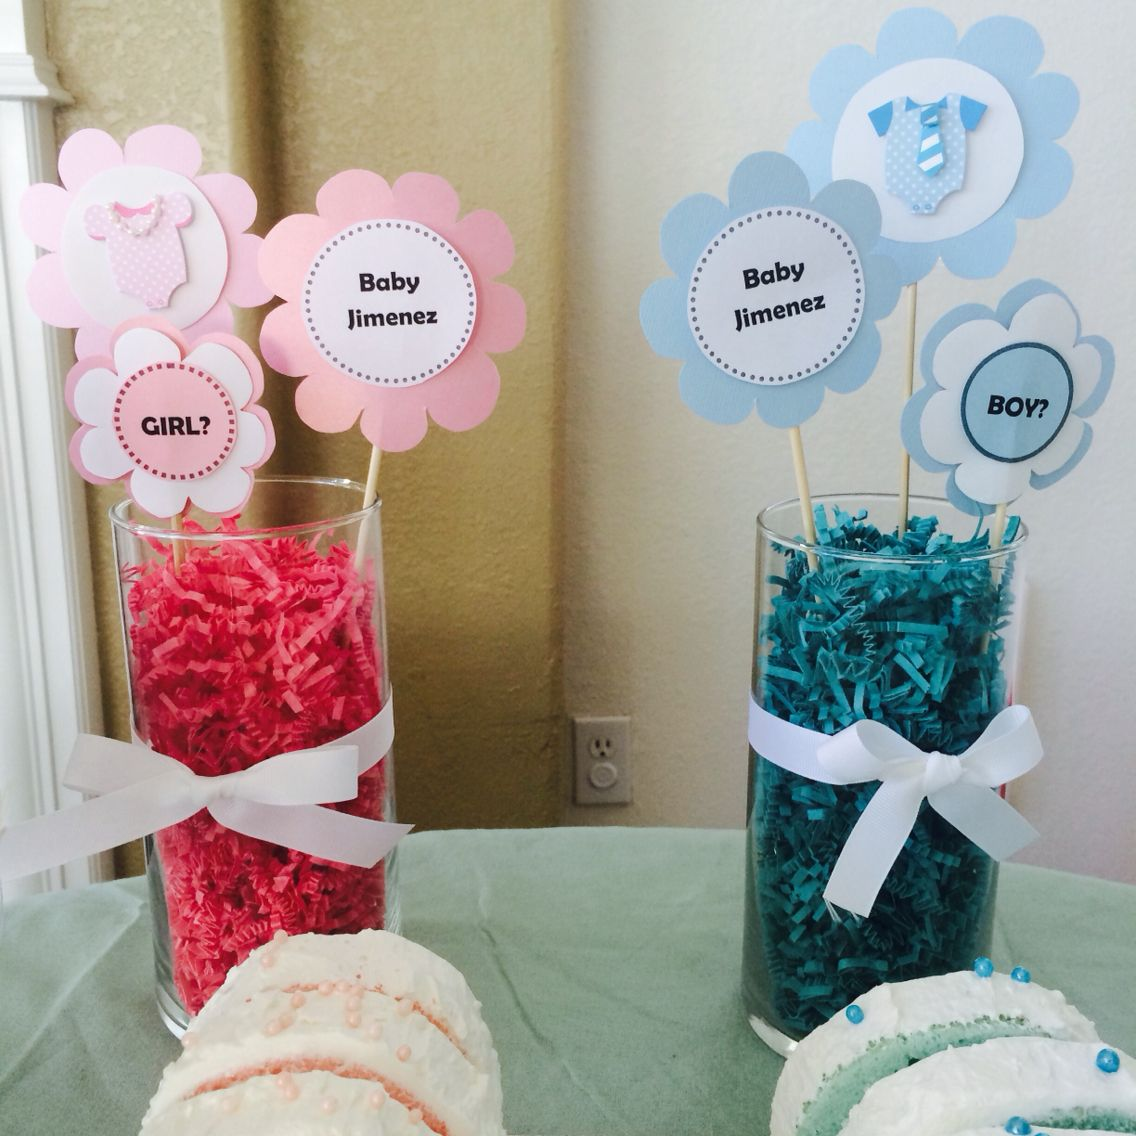 20 Simple Gender Reveal Ideas Pictures And Ideas On Carver Museum